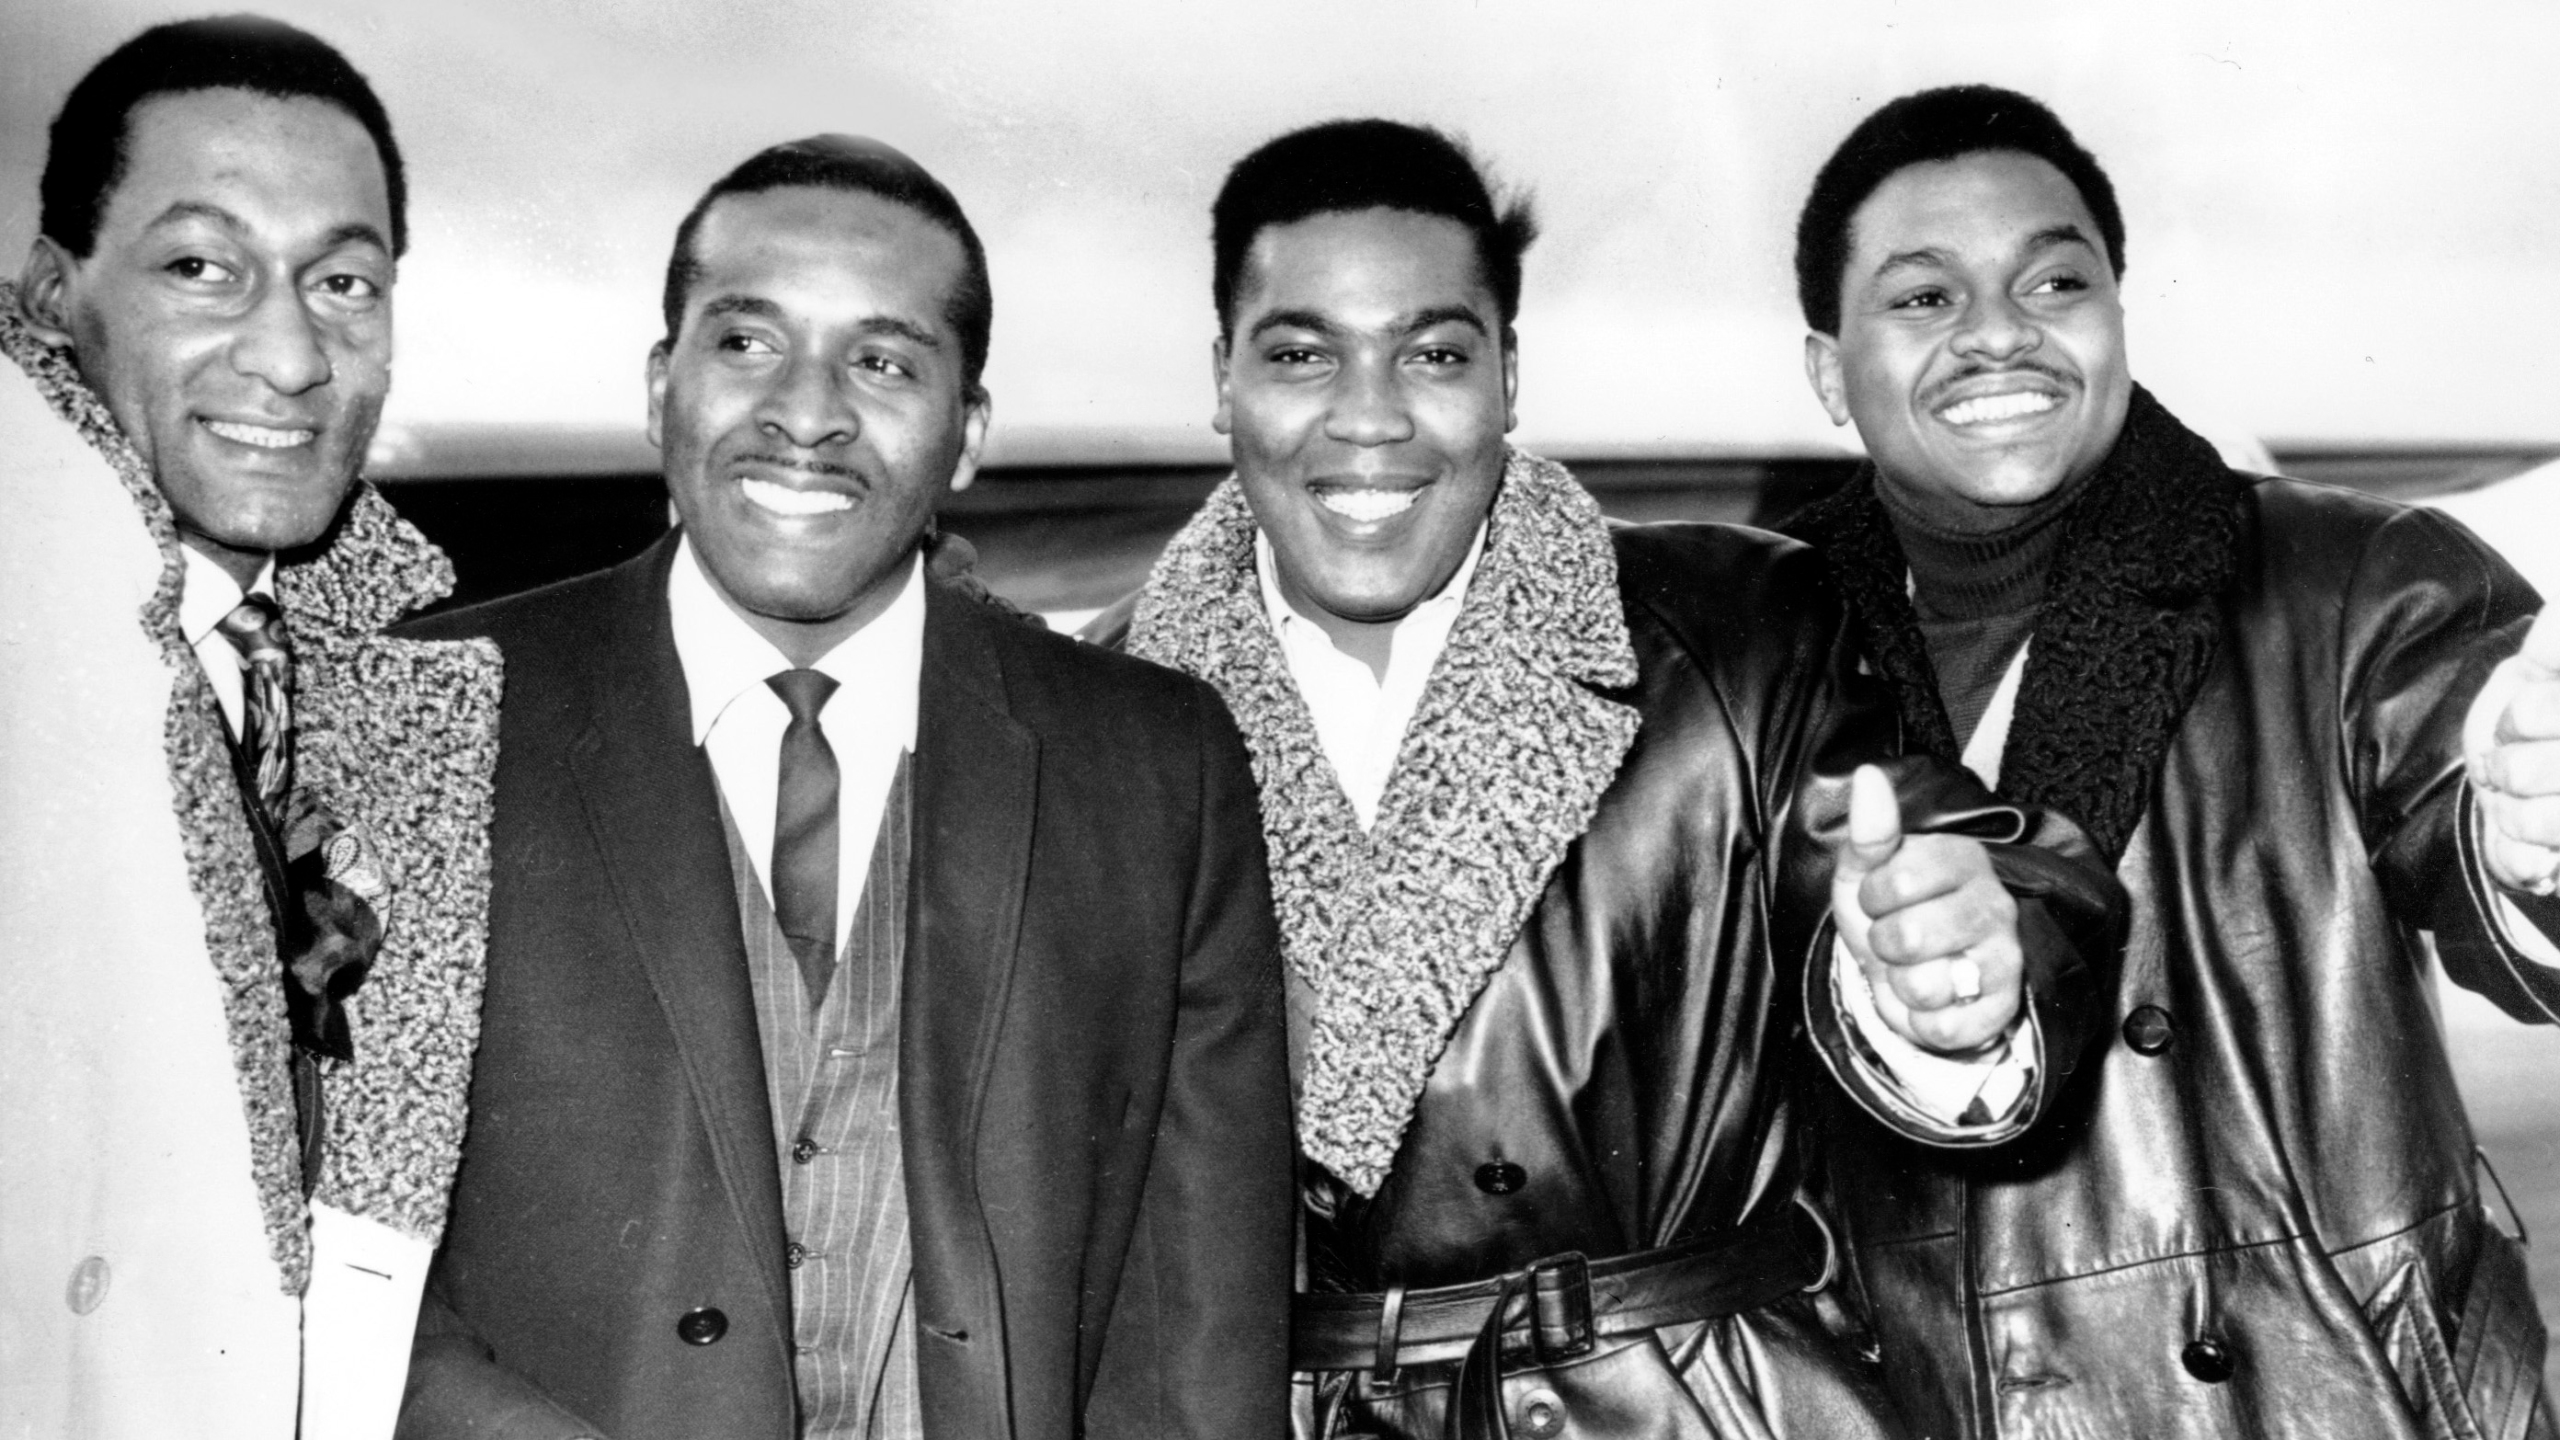 Attention fans of the Motown sound, the Temptations and the Four Tops will be performing in Roanoke this February.